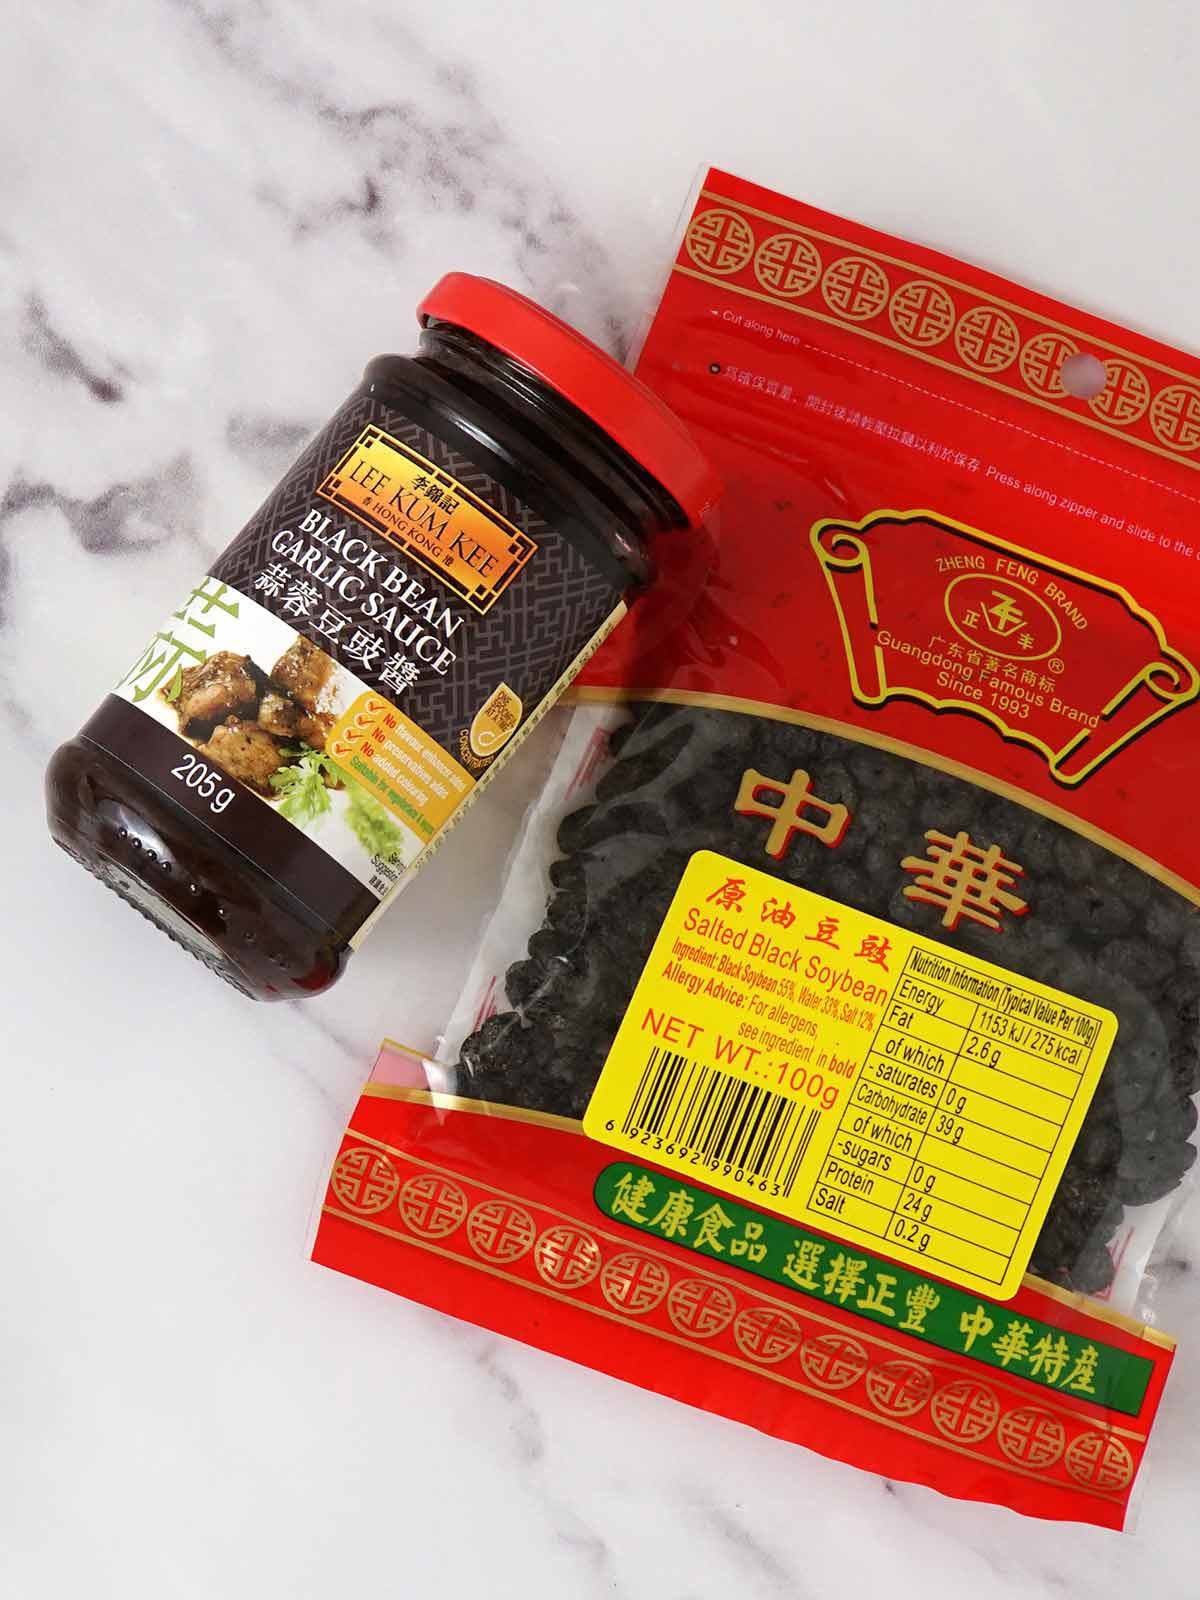 A packet of fermented black soybeans and a jar of black bean garlic sauce displayed on the white table.